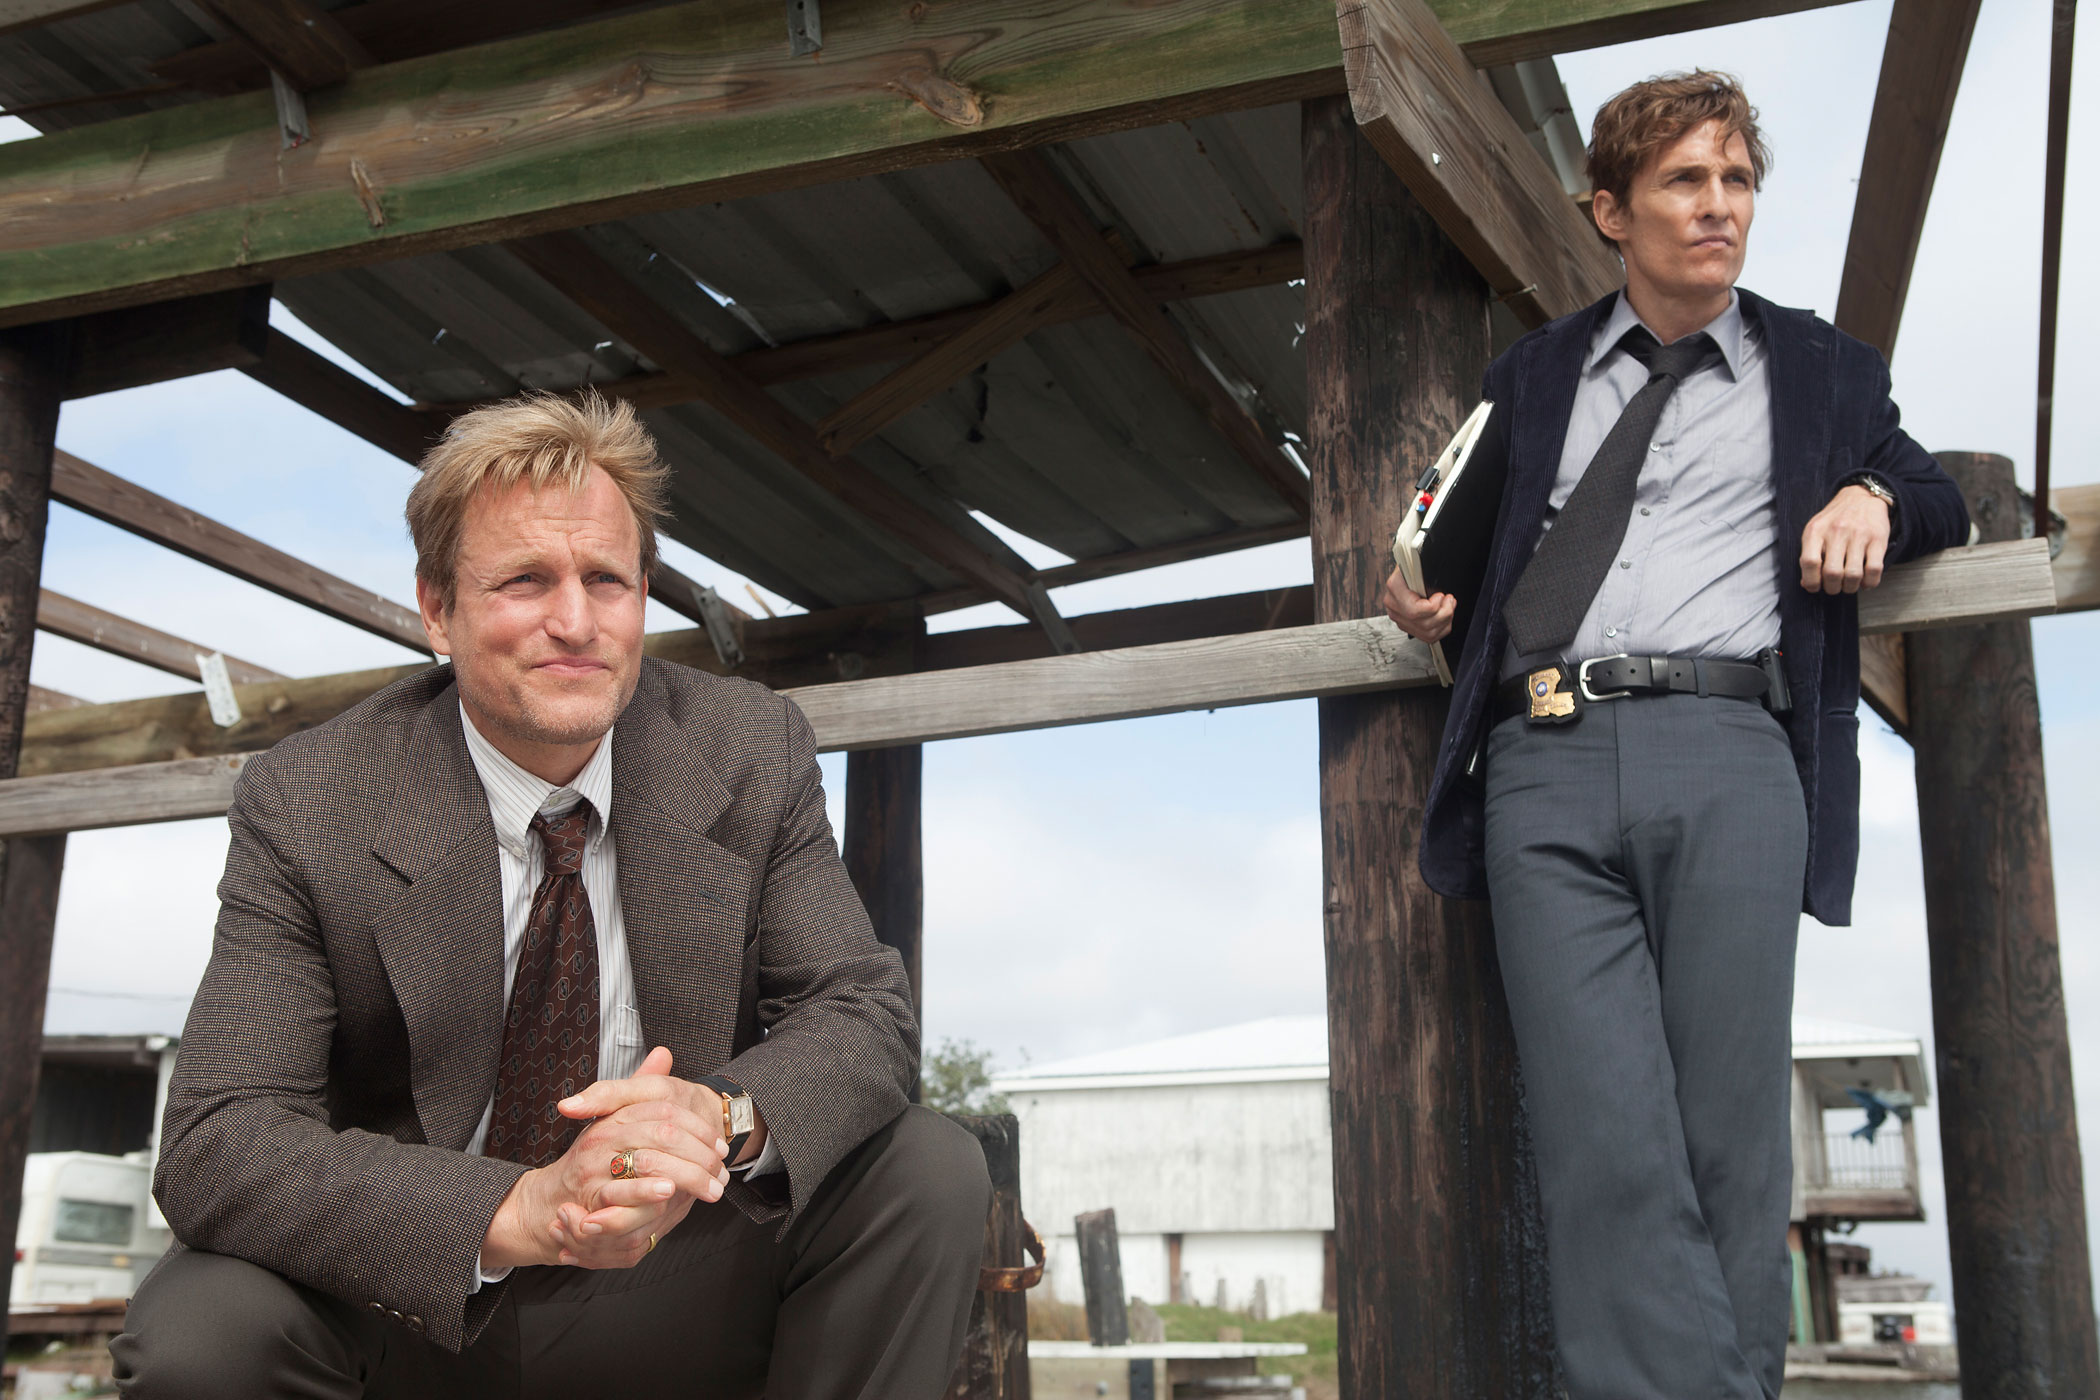 5. True Detective (HBO) - 71,130 average users pirating worldwide per day